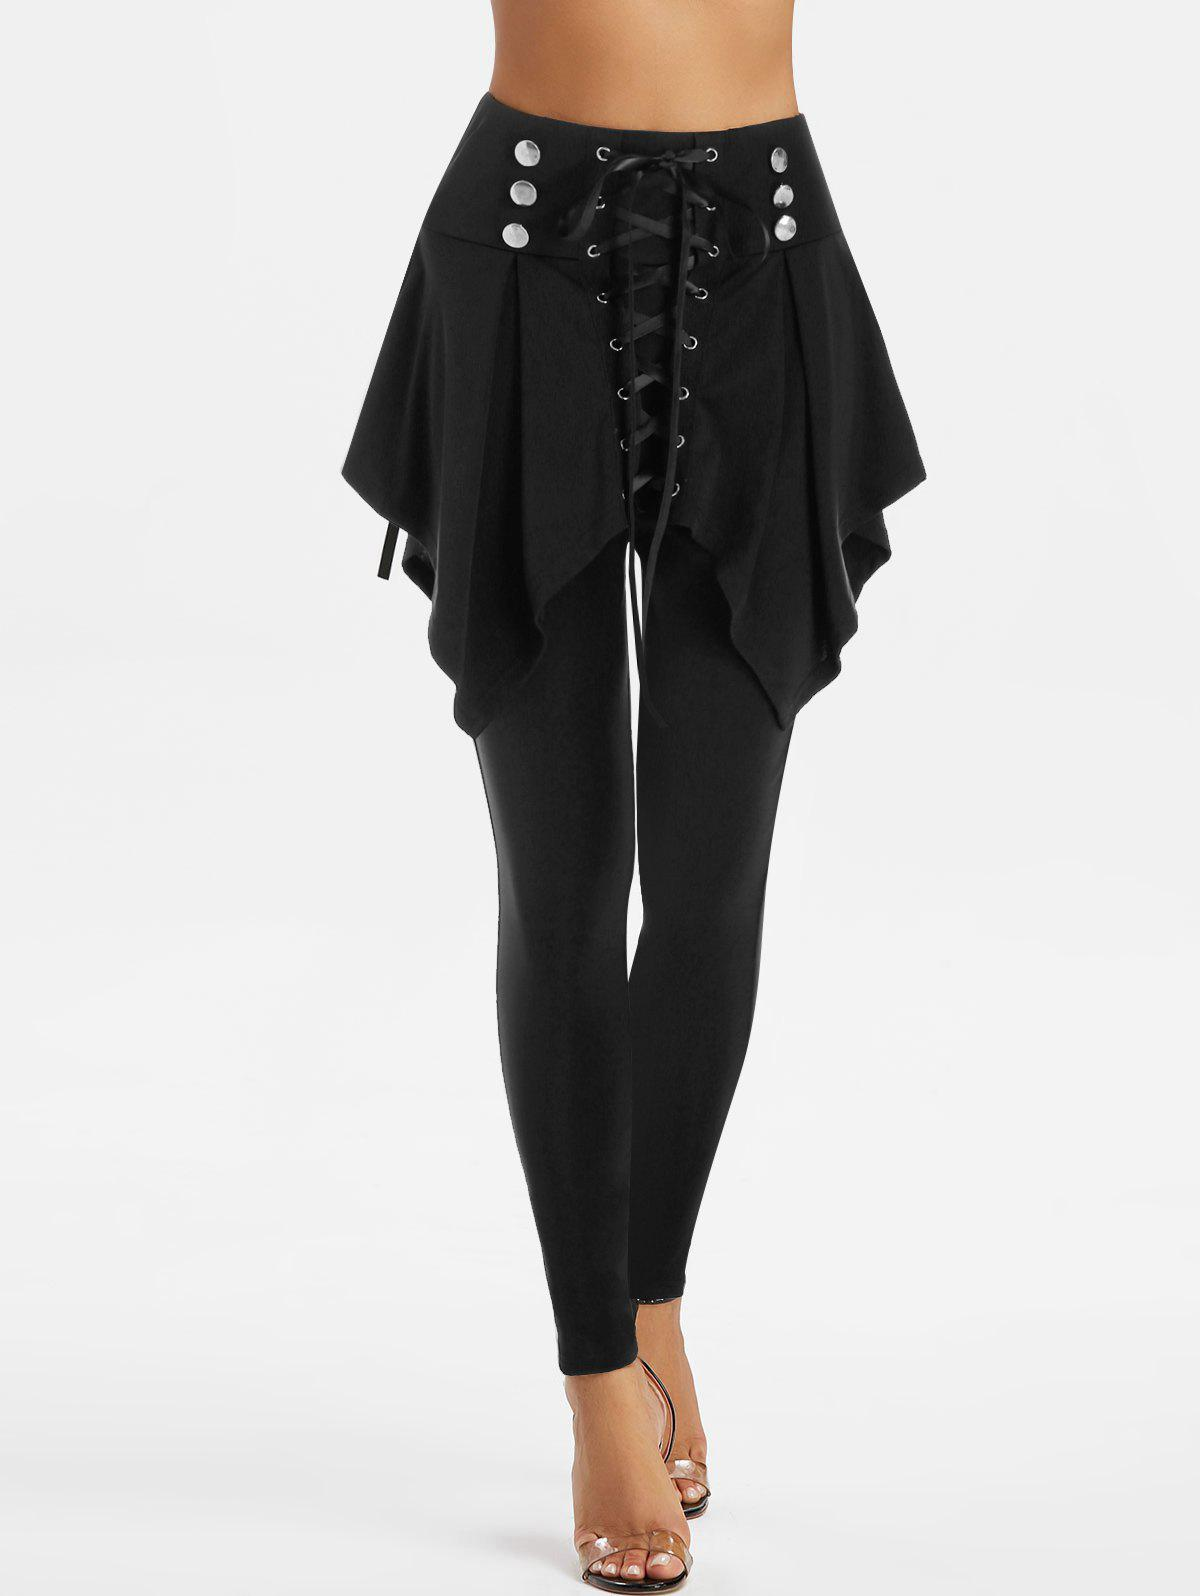 High Waisted Lace-up Front Skirted Pants - BLACK M